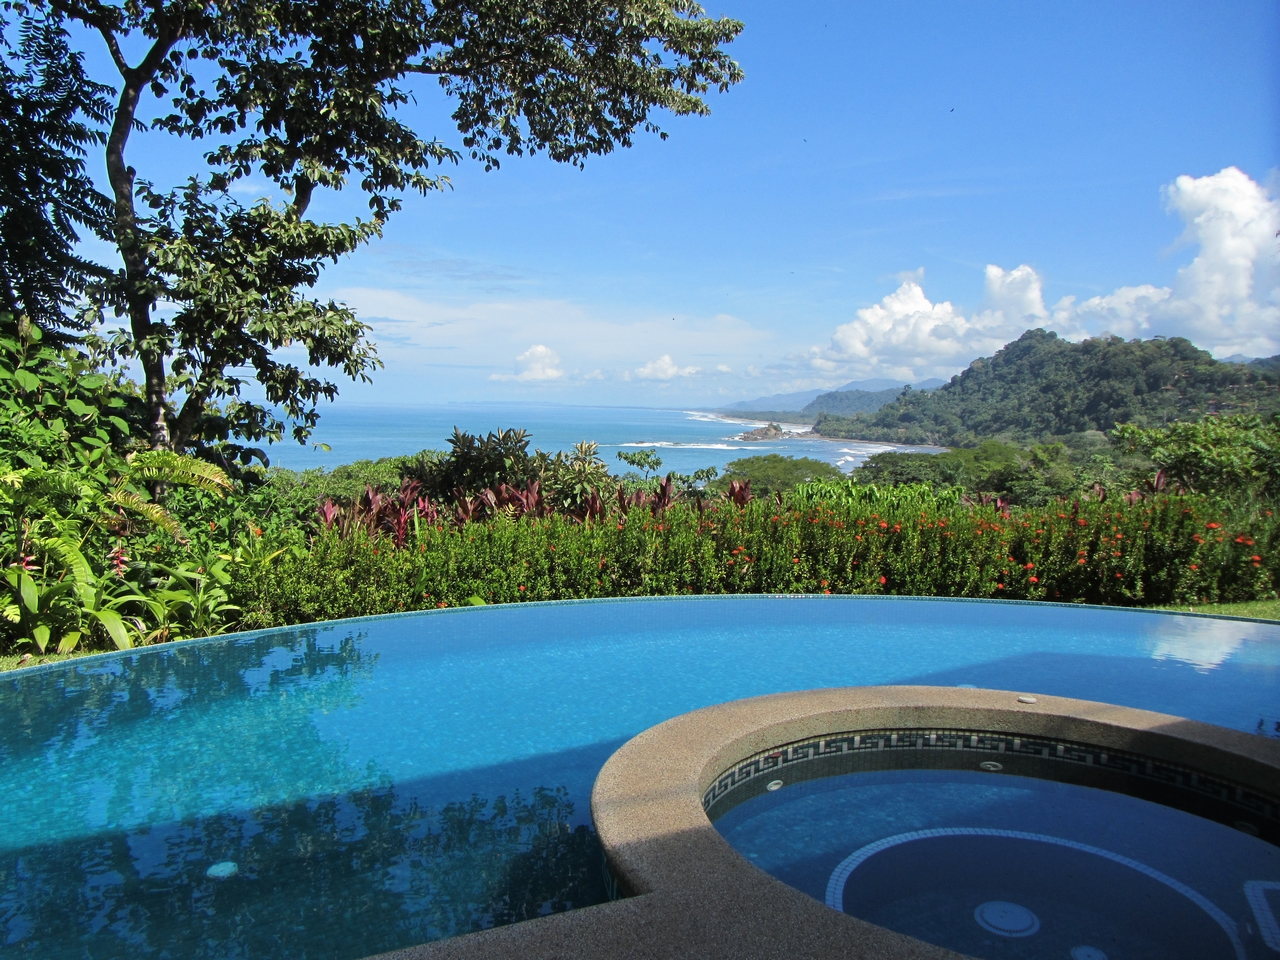 Real estate in costa rica great deal for a luxury for Luxury vacation costa rica